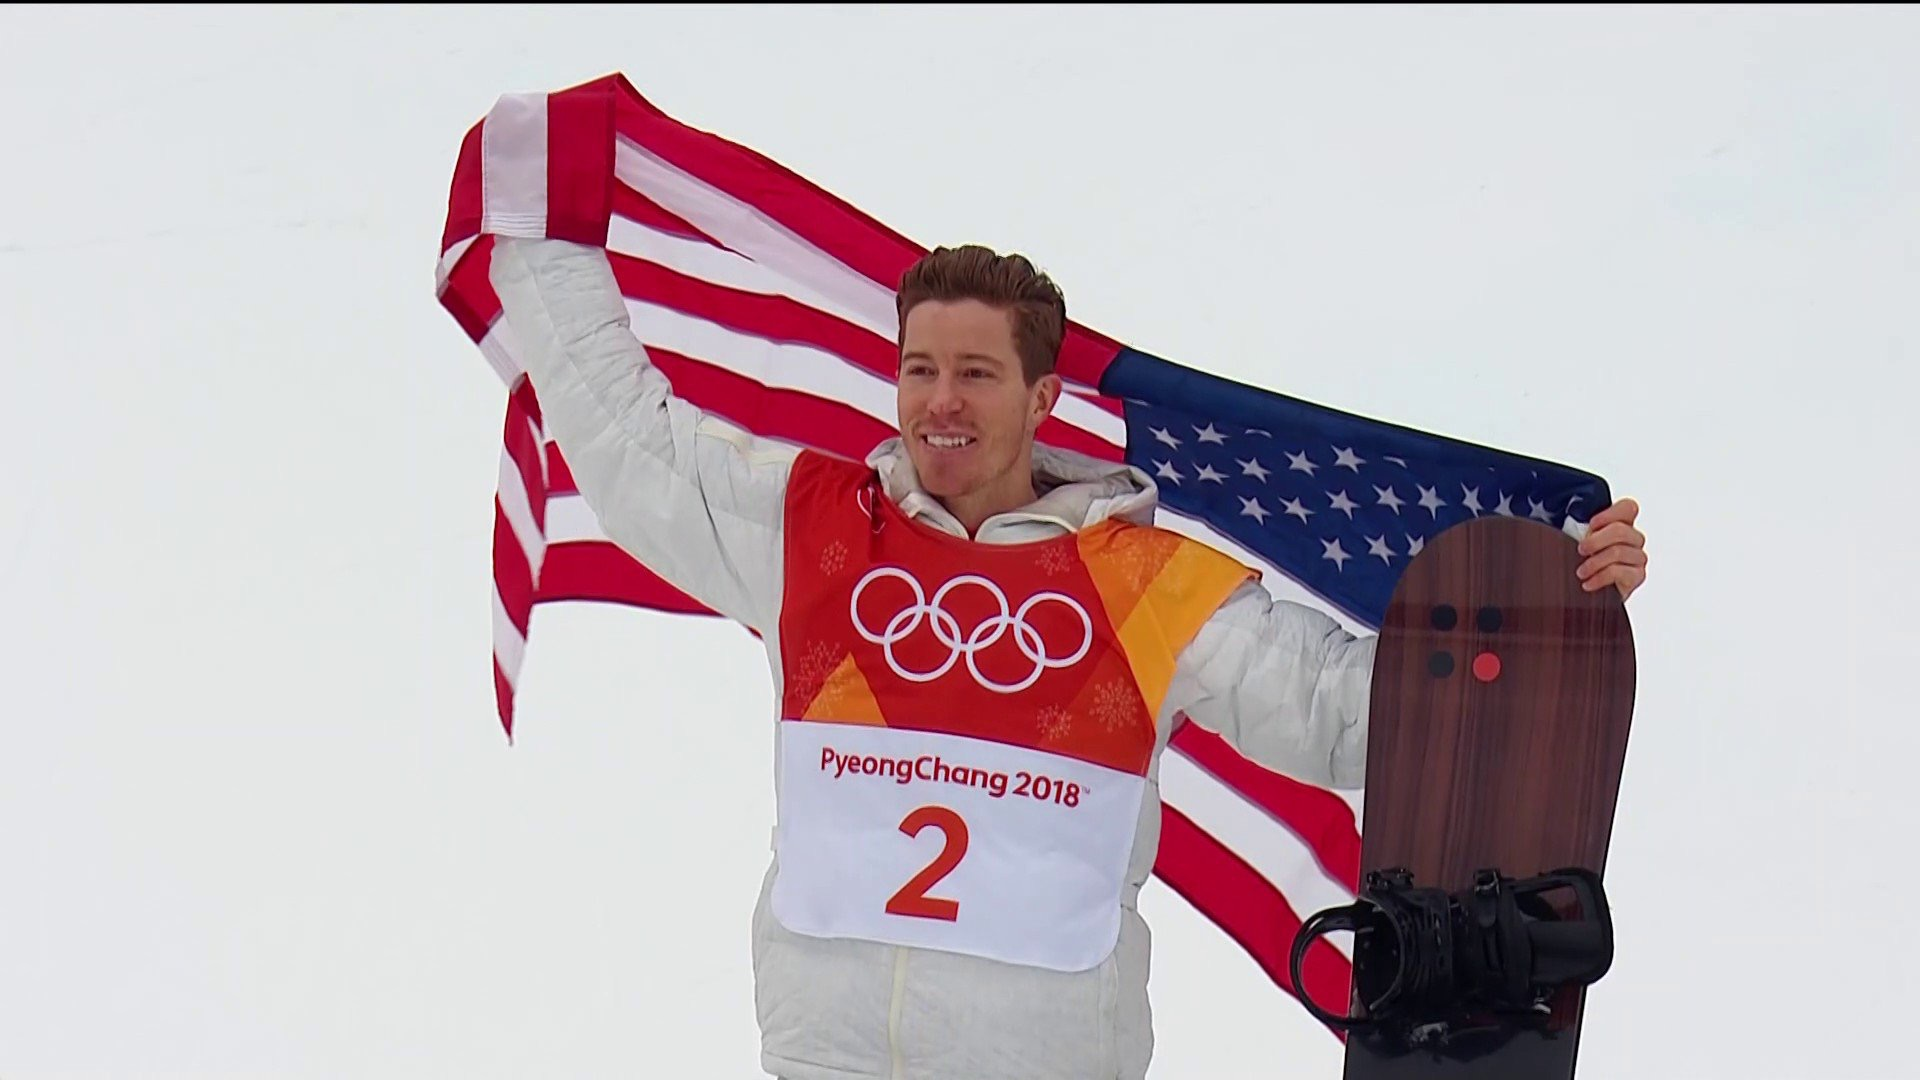 Shaun White Wins Gold in the Halfpipe and Brings Home the 100th Gold Medal in USA Winter Olympics History